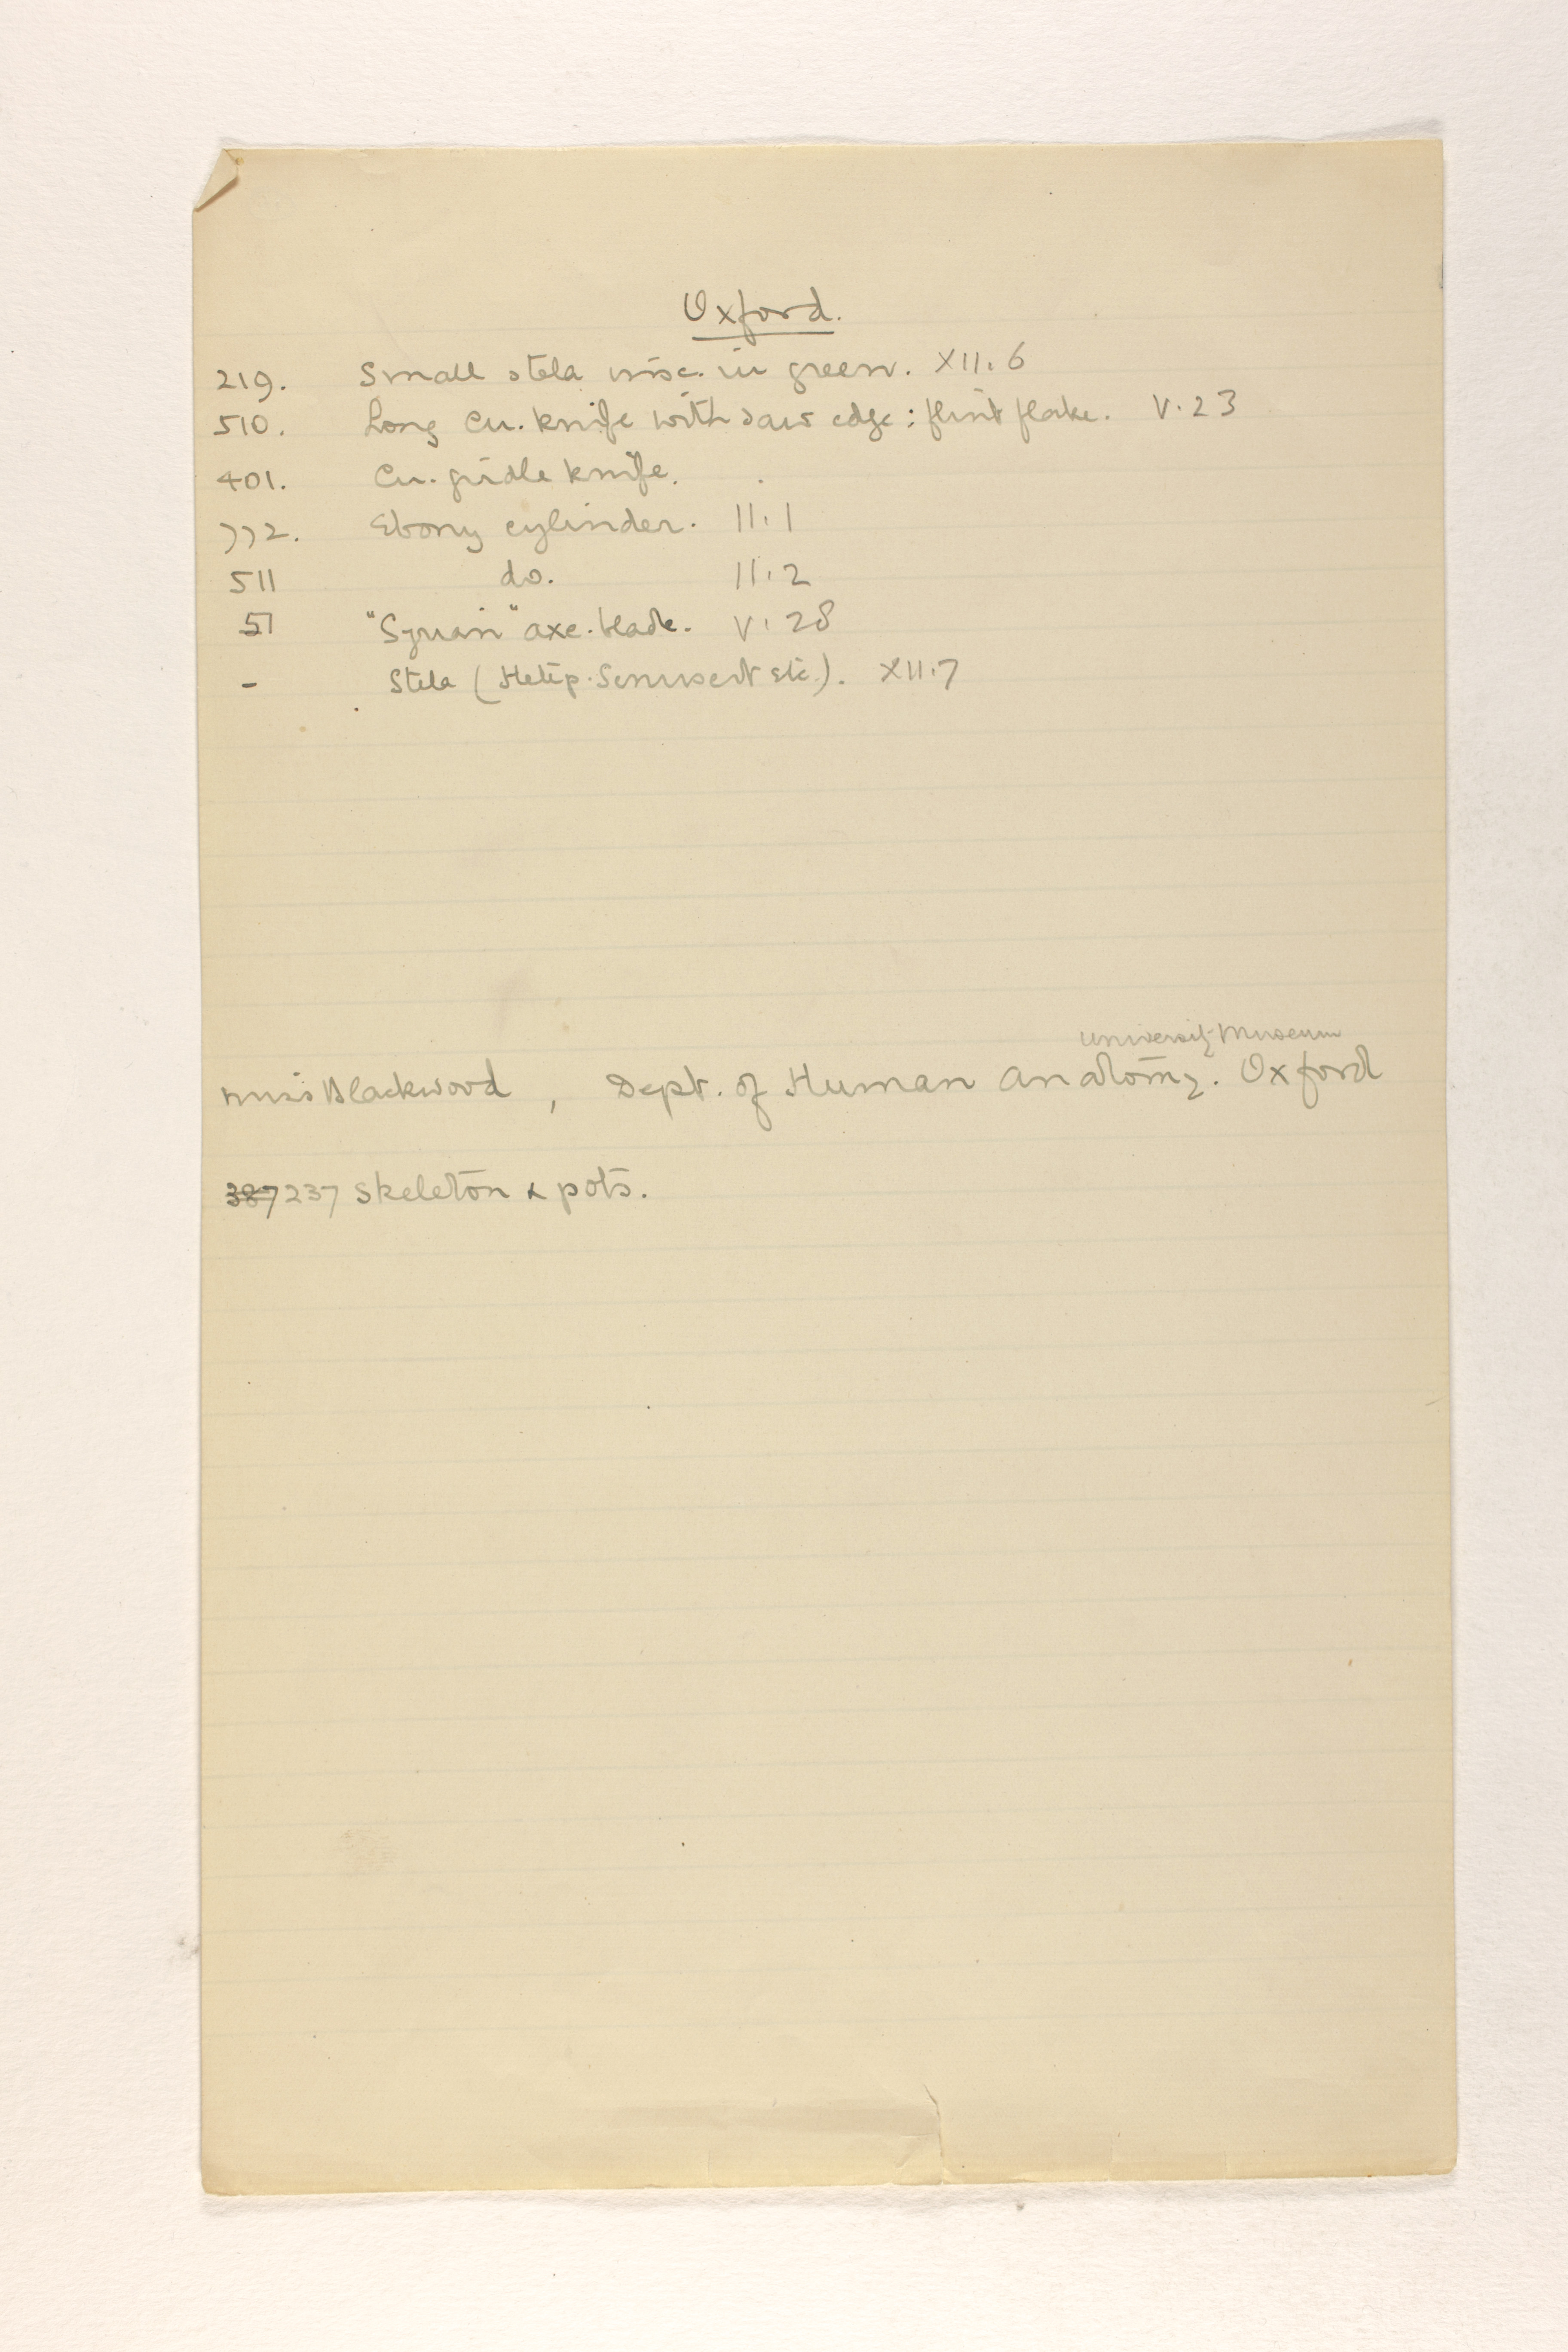 1921-22 Abydos, Oxyrhynchus Individual institution list PMA/WFP1/D/25/15